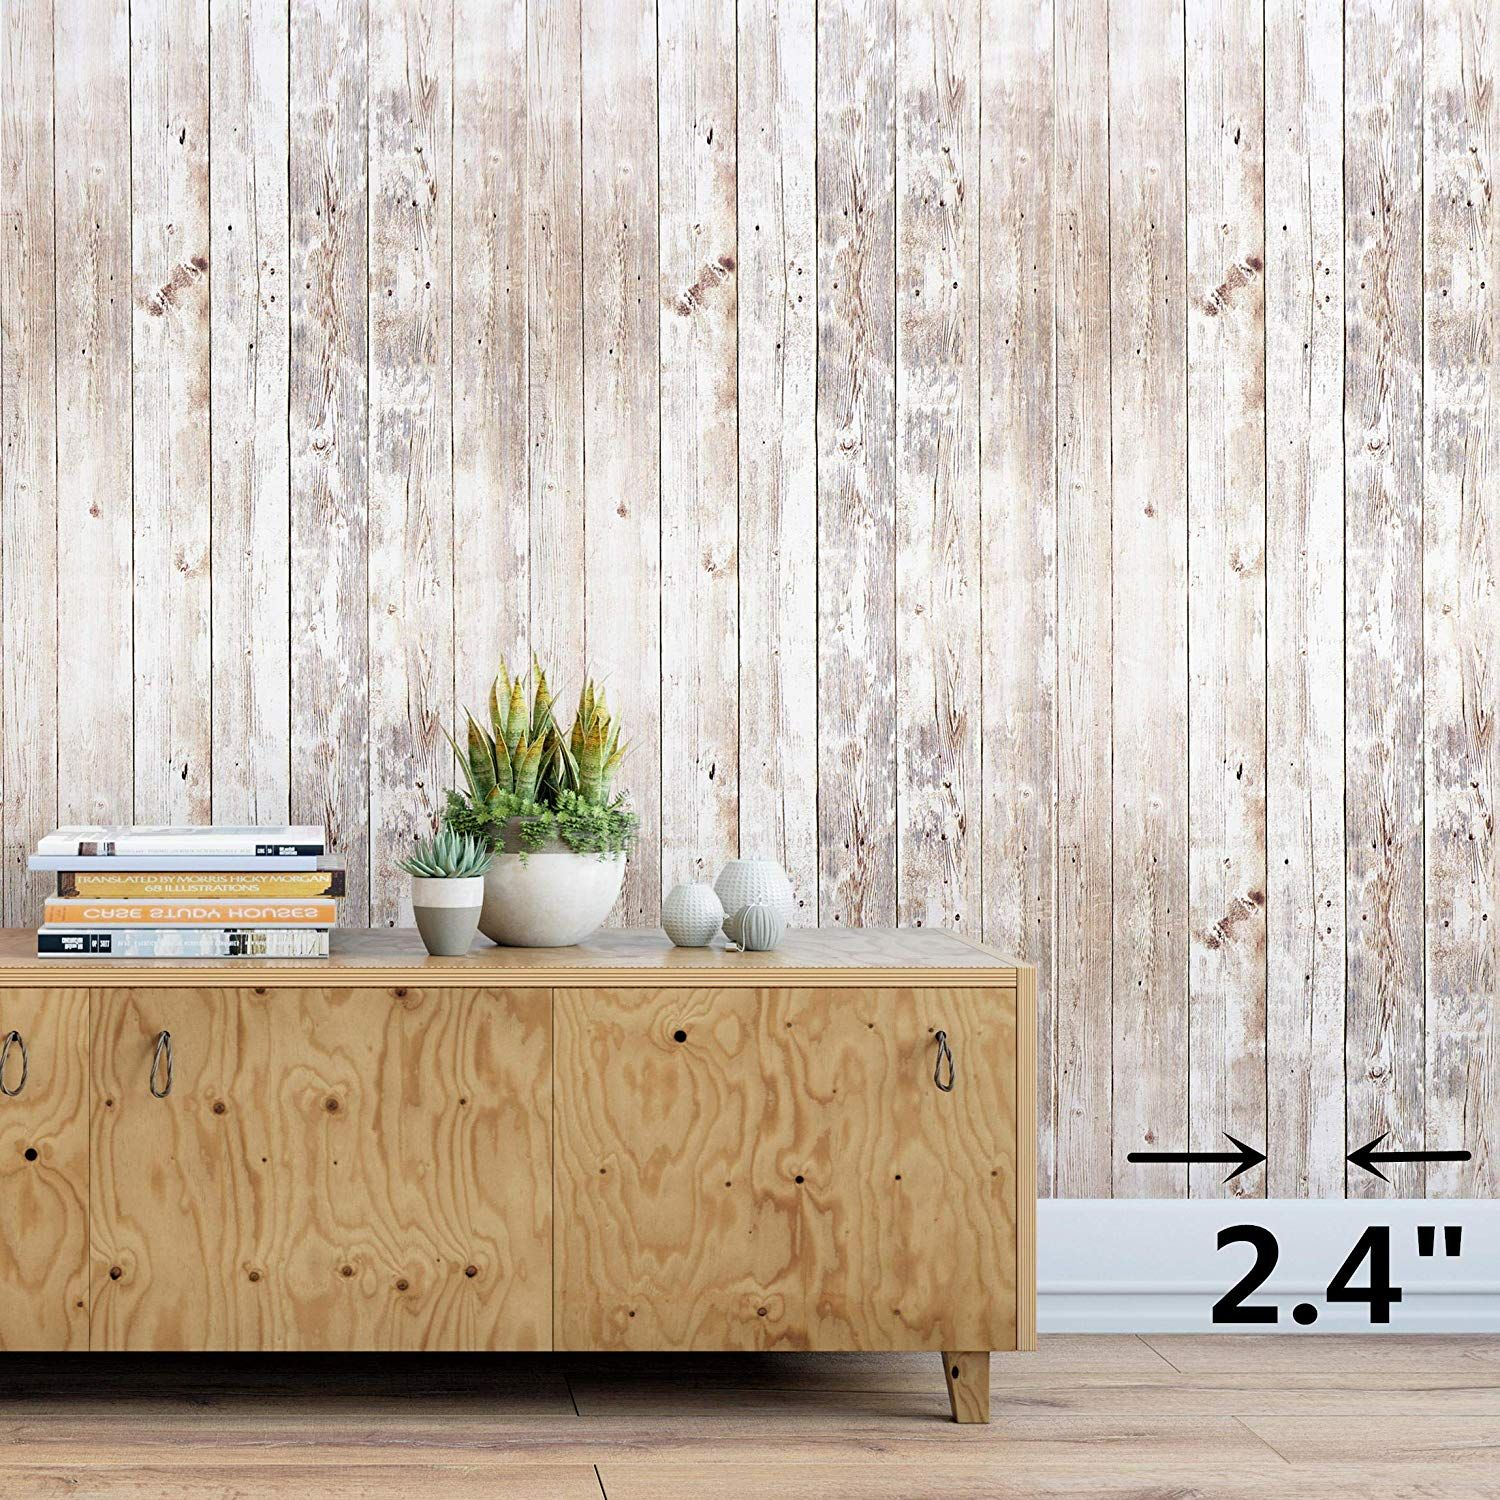 Wood Contact Paper 17 8 X 16 4 Wood Peel And Stick Wallpaper Self Adhesive Removable Wall Distressed Wood Wallpaper Wood Plank Wallpaper Distressed Wood Wall